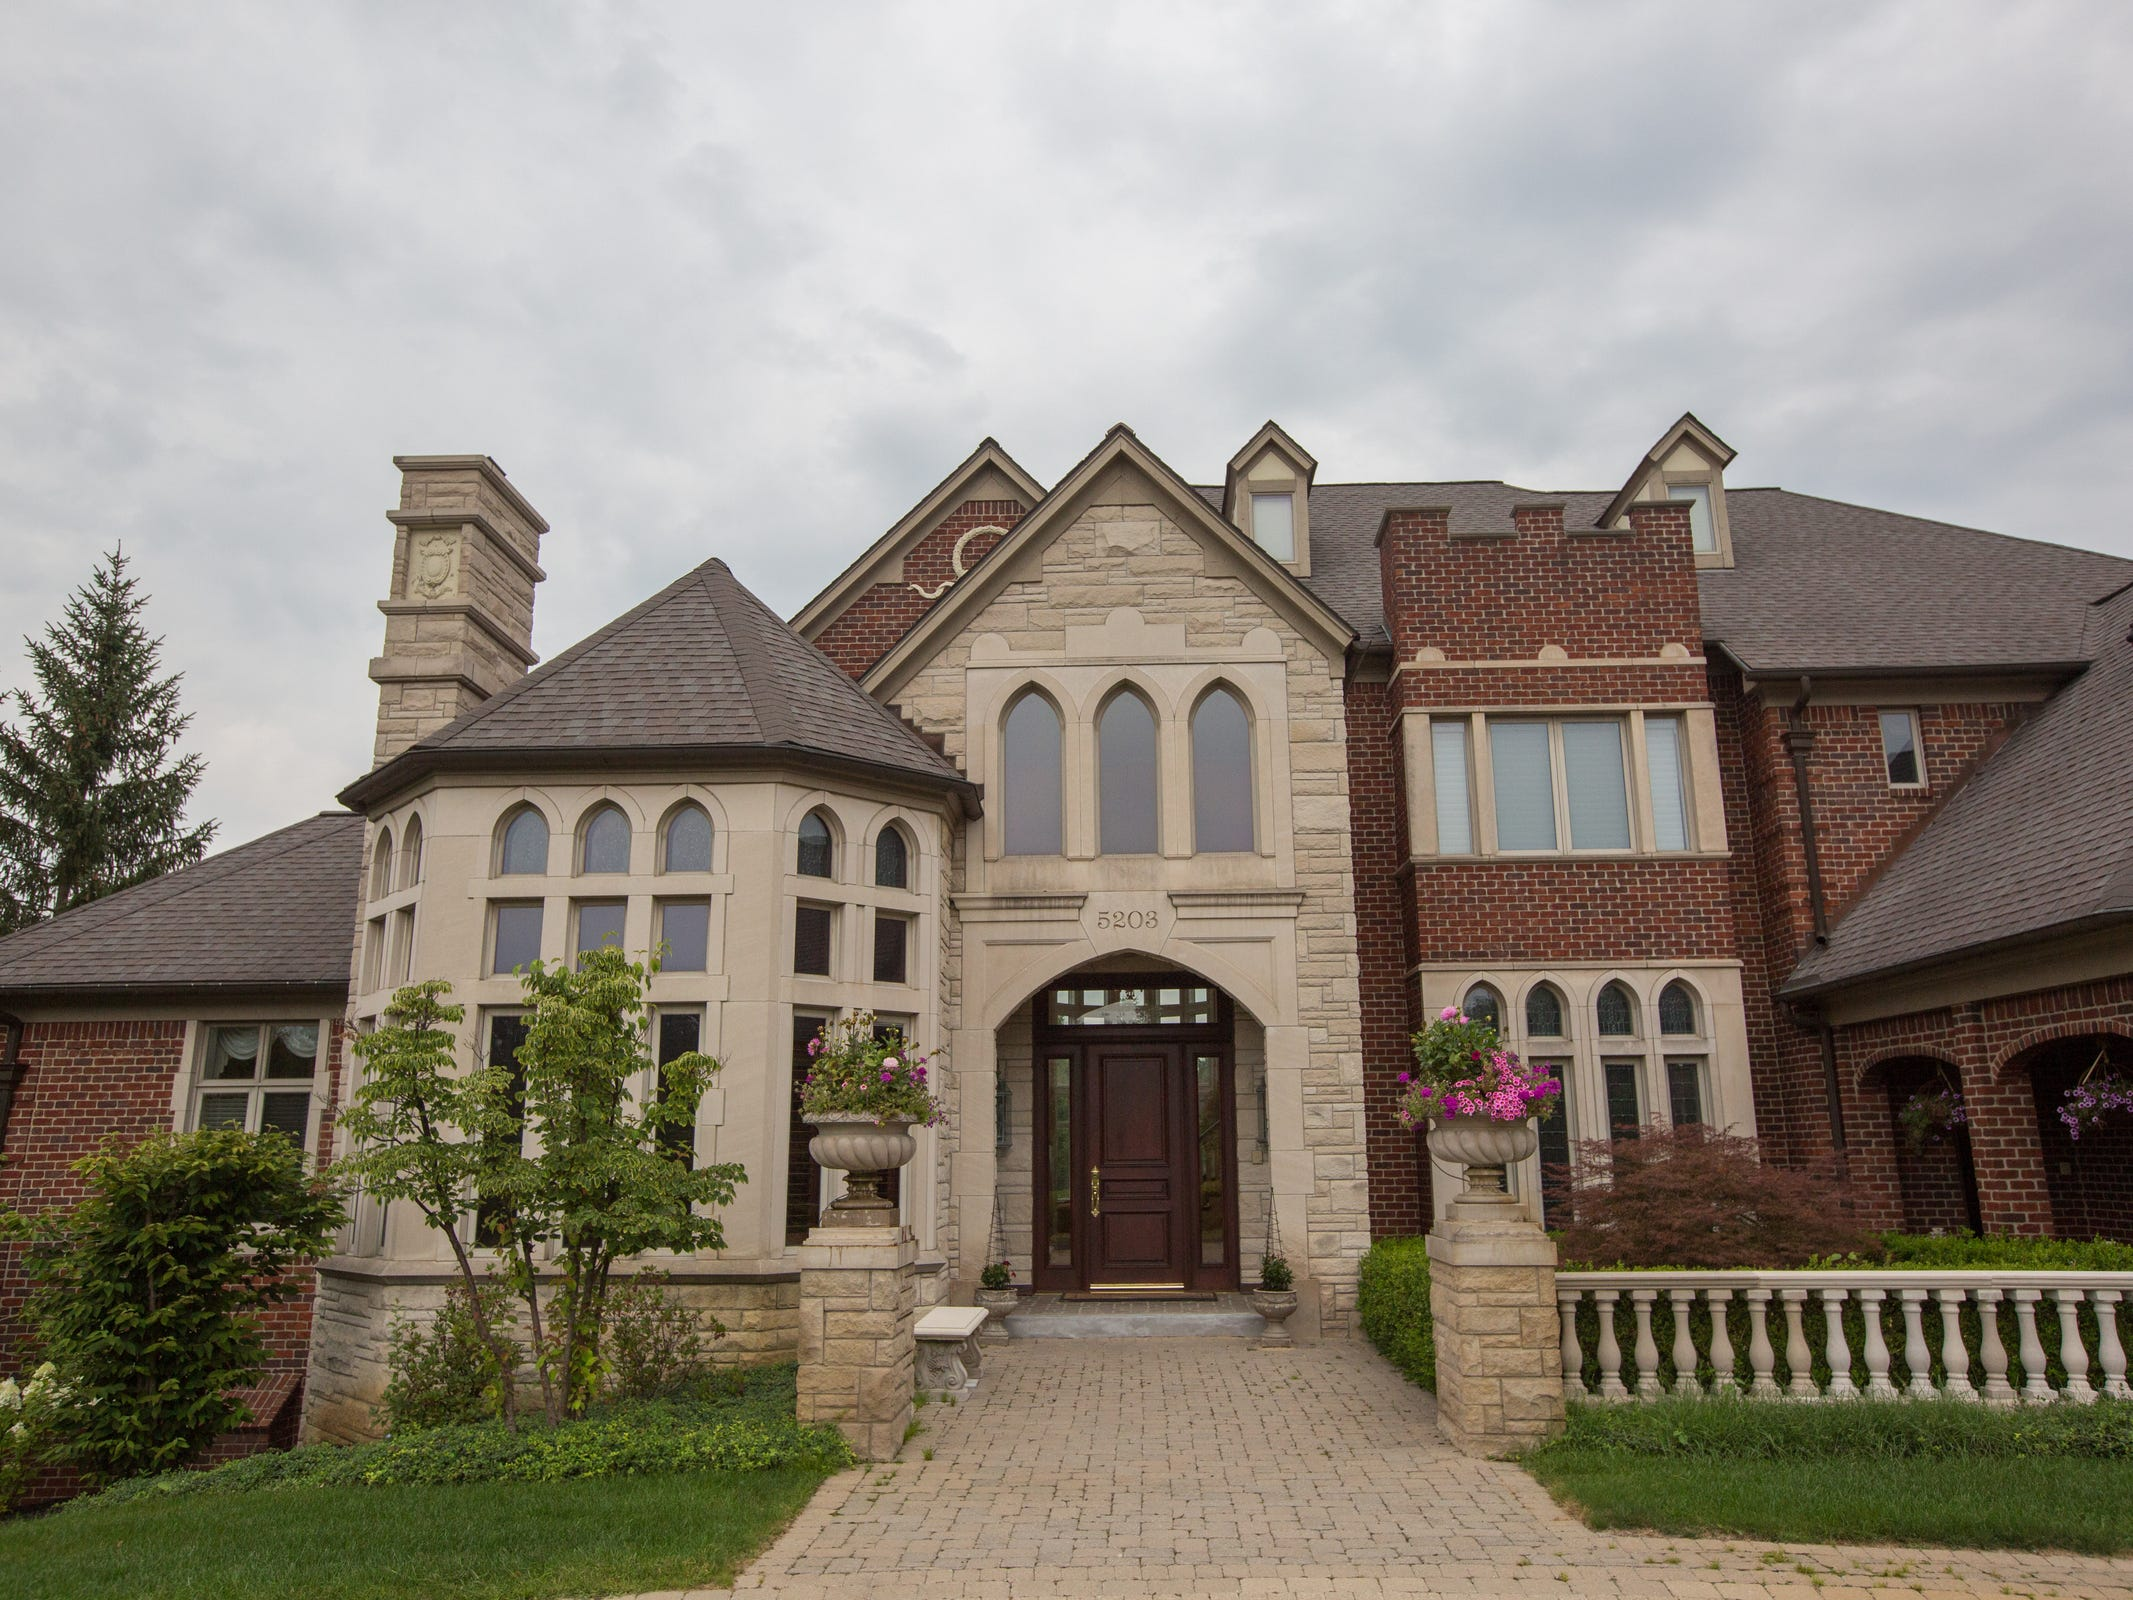 Carved limestone trim, limestone walls and stone balustrades are part of the rich, traditional exterior.